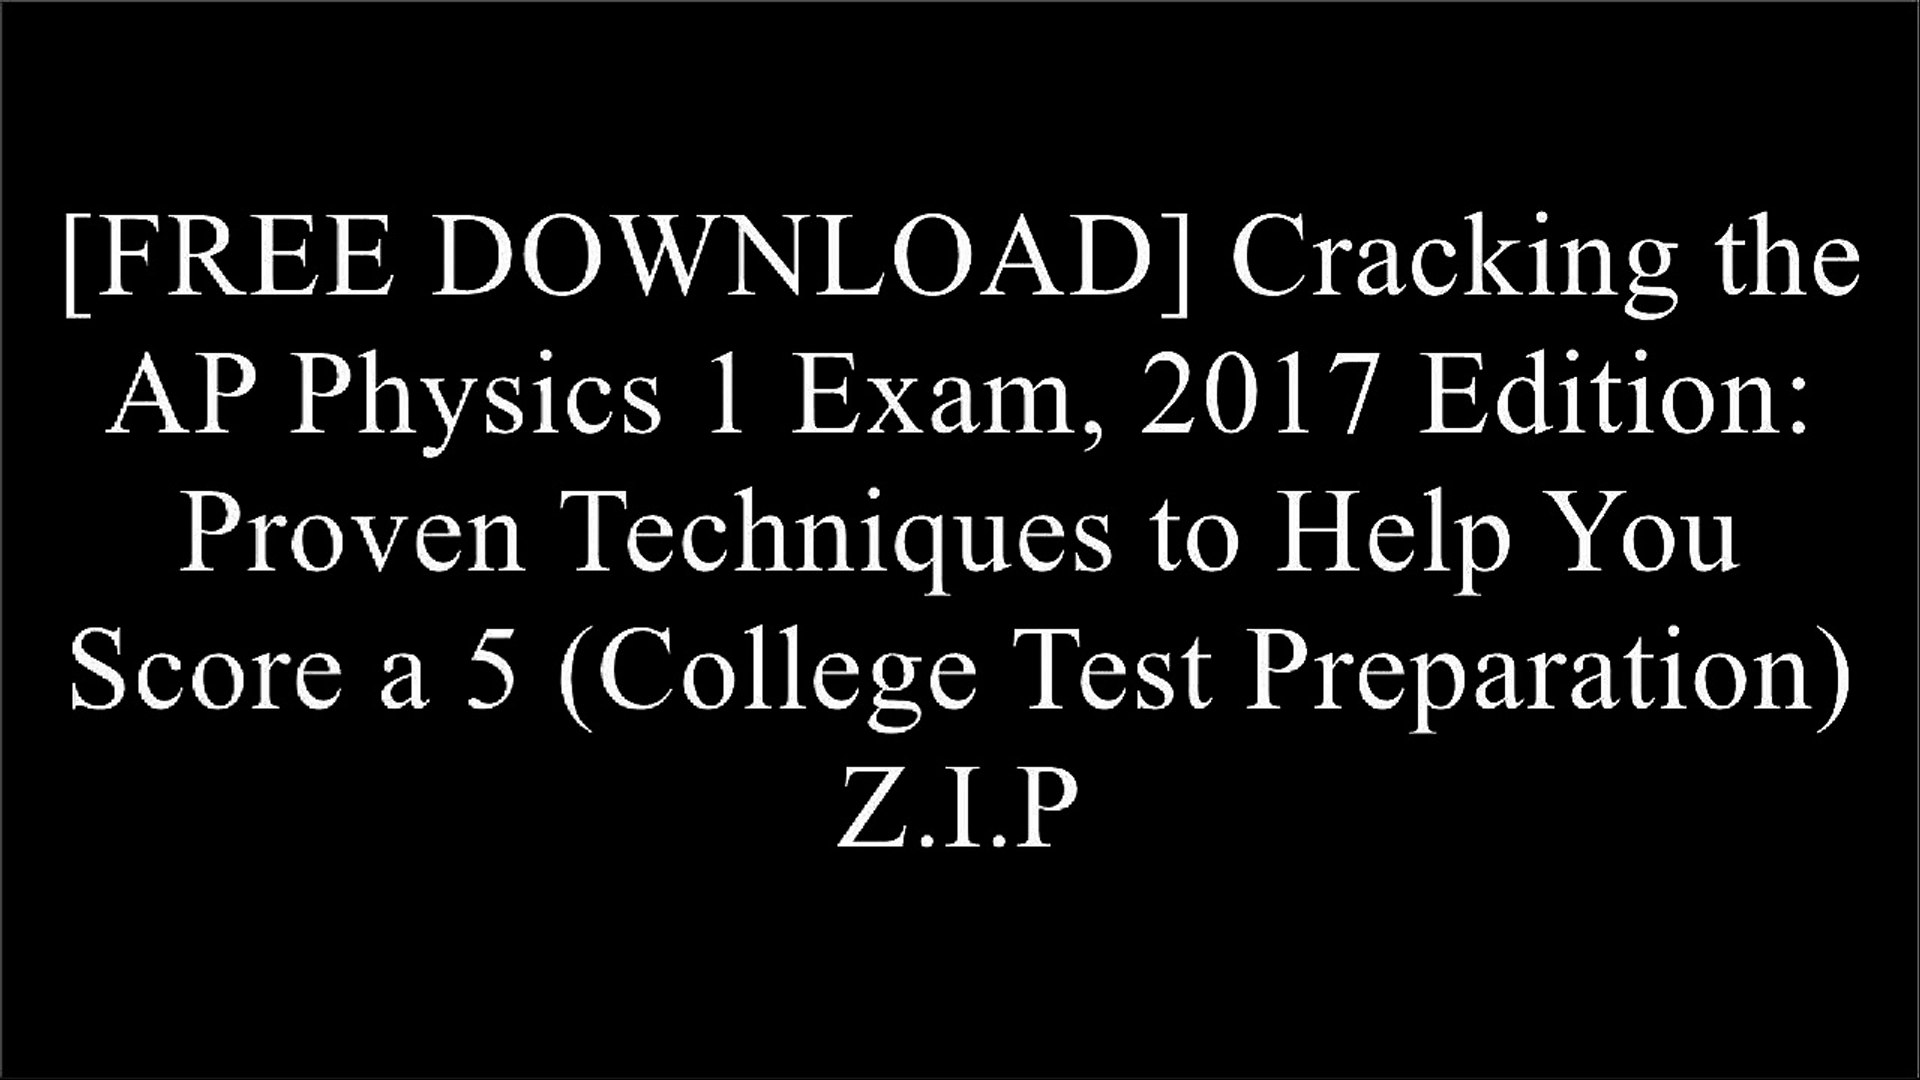 [GSztL [F r e e] [D o w n l o a d]] Cracking the AP Physics 1 Exam, 2017  Edition: Proven Techniques to Help You Score a 5 (College Test Preparation)  by Princeton ReviewSterling Test PrepPrinceton